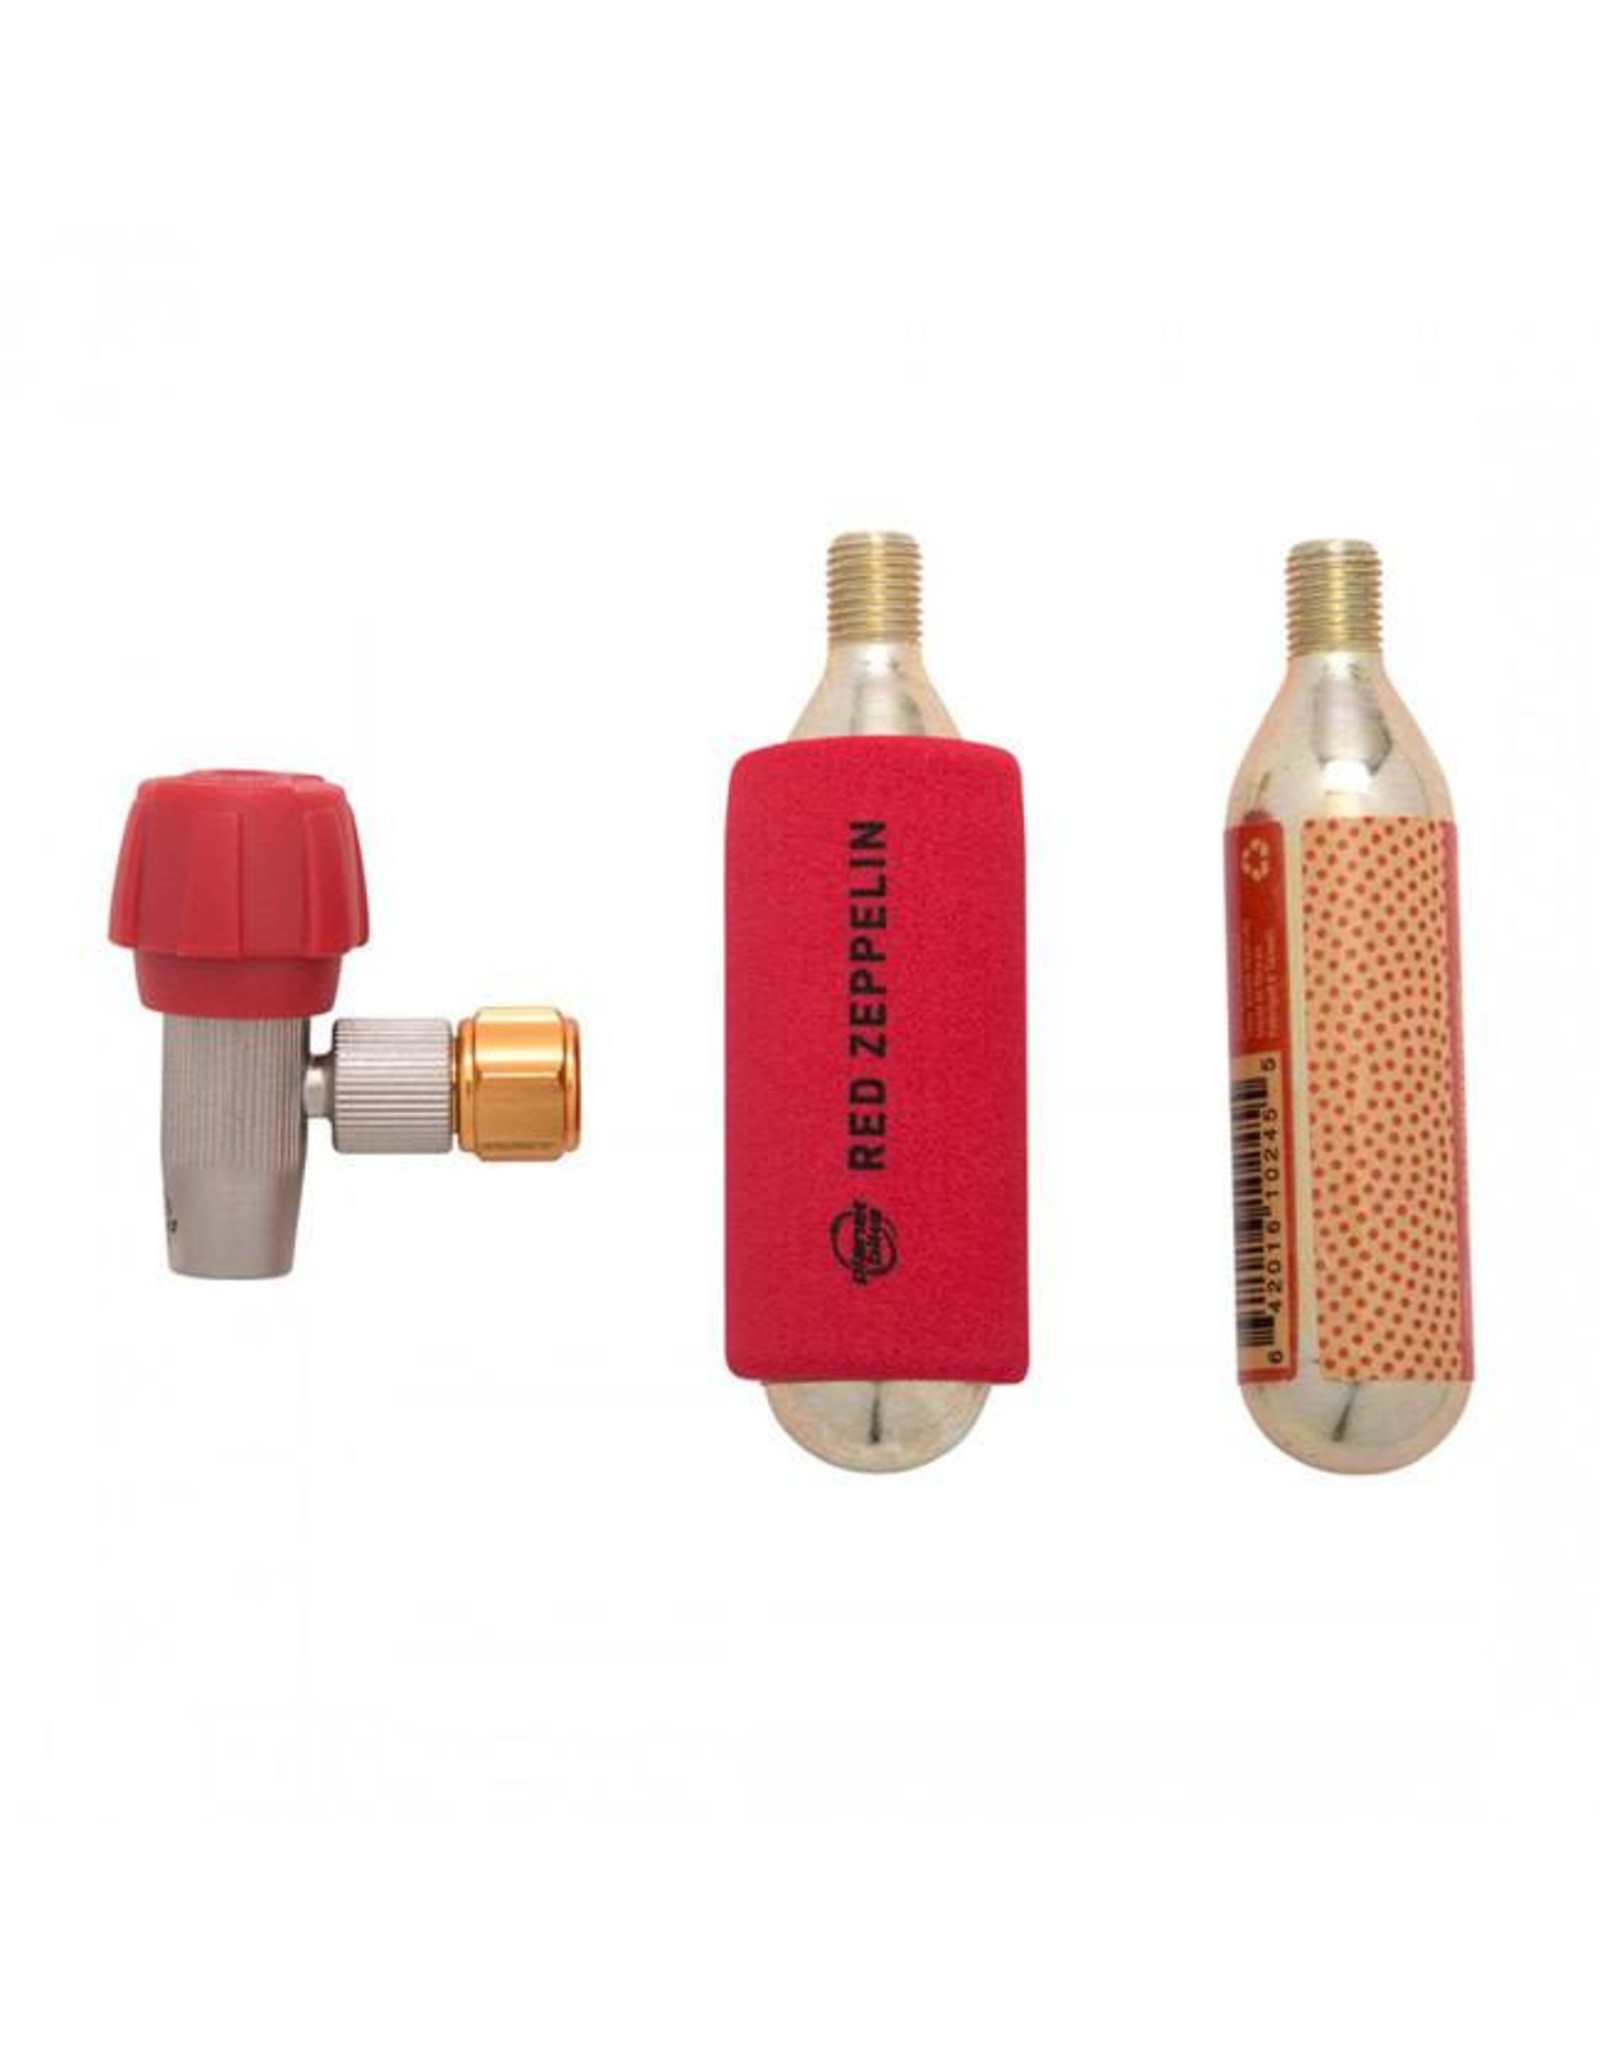 Planet Bike Planet Bike Red Zeppelin Inflator: Includes Two Threaded 16g Cartridges and Sleeve